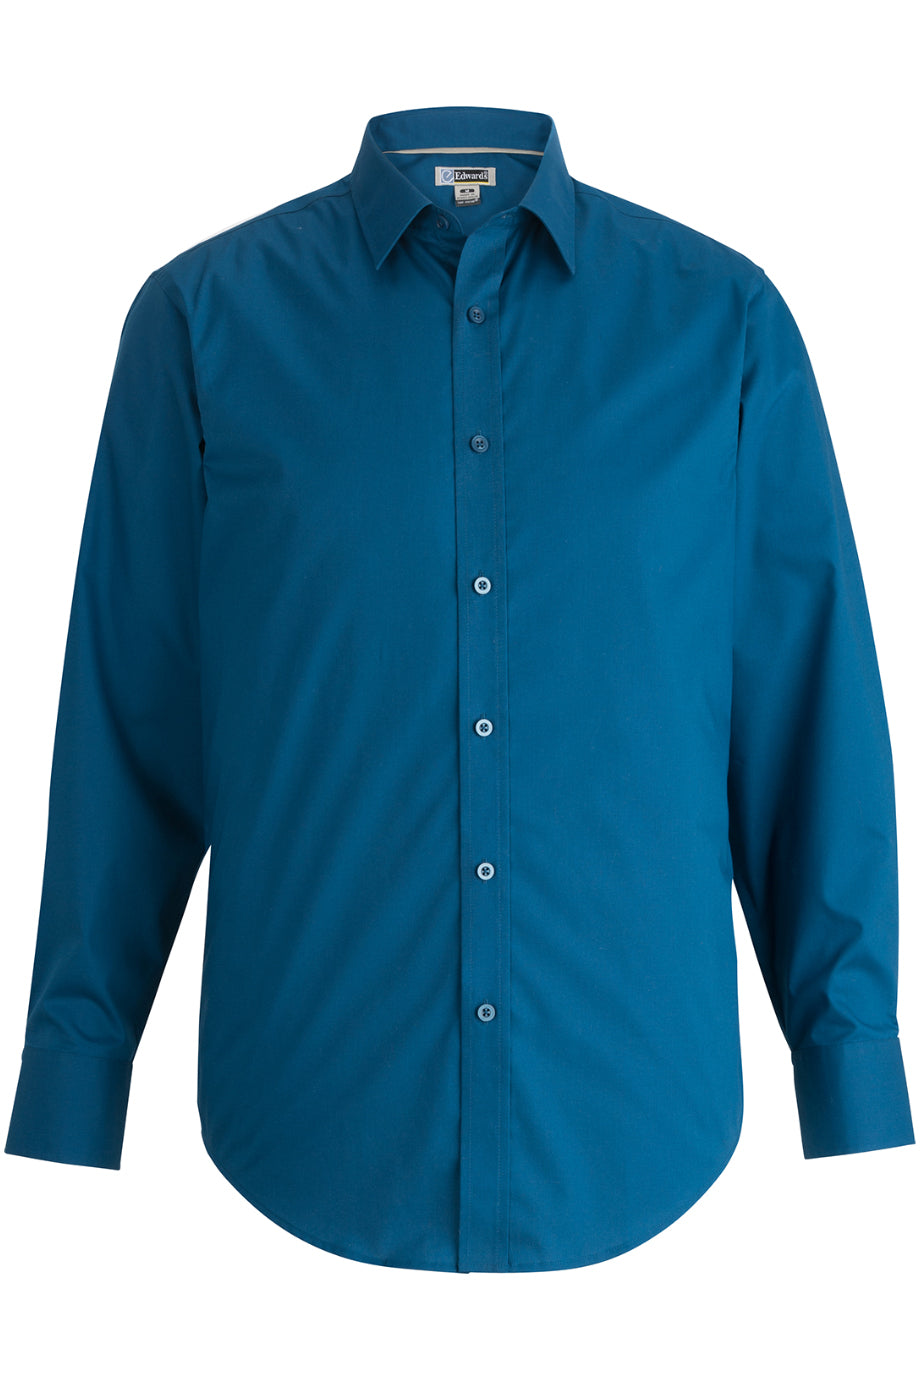 French Navy Edwards Mens L/S Stretch Broadcloth Shirt